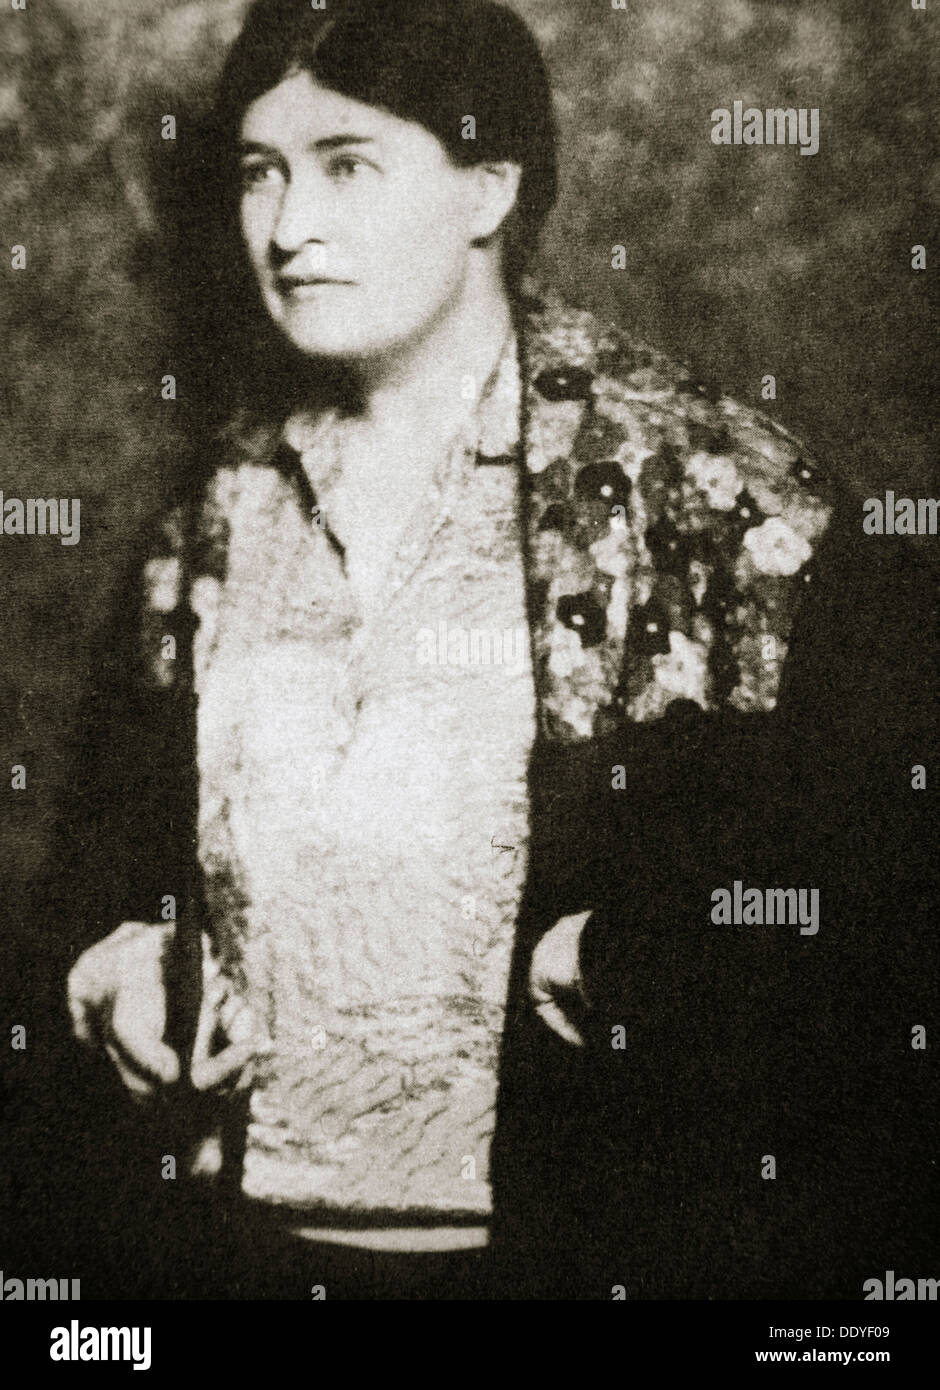 A biography and life work of willa sibert cather an american novelist